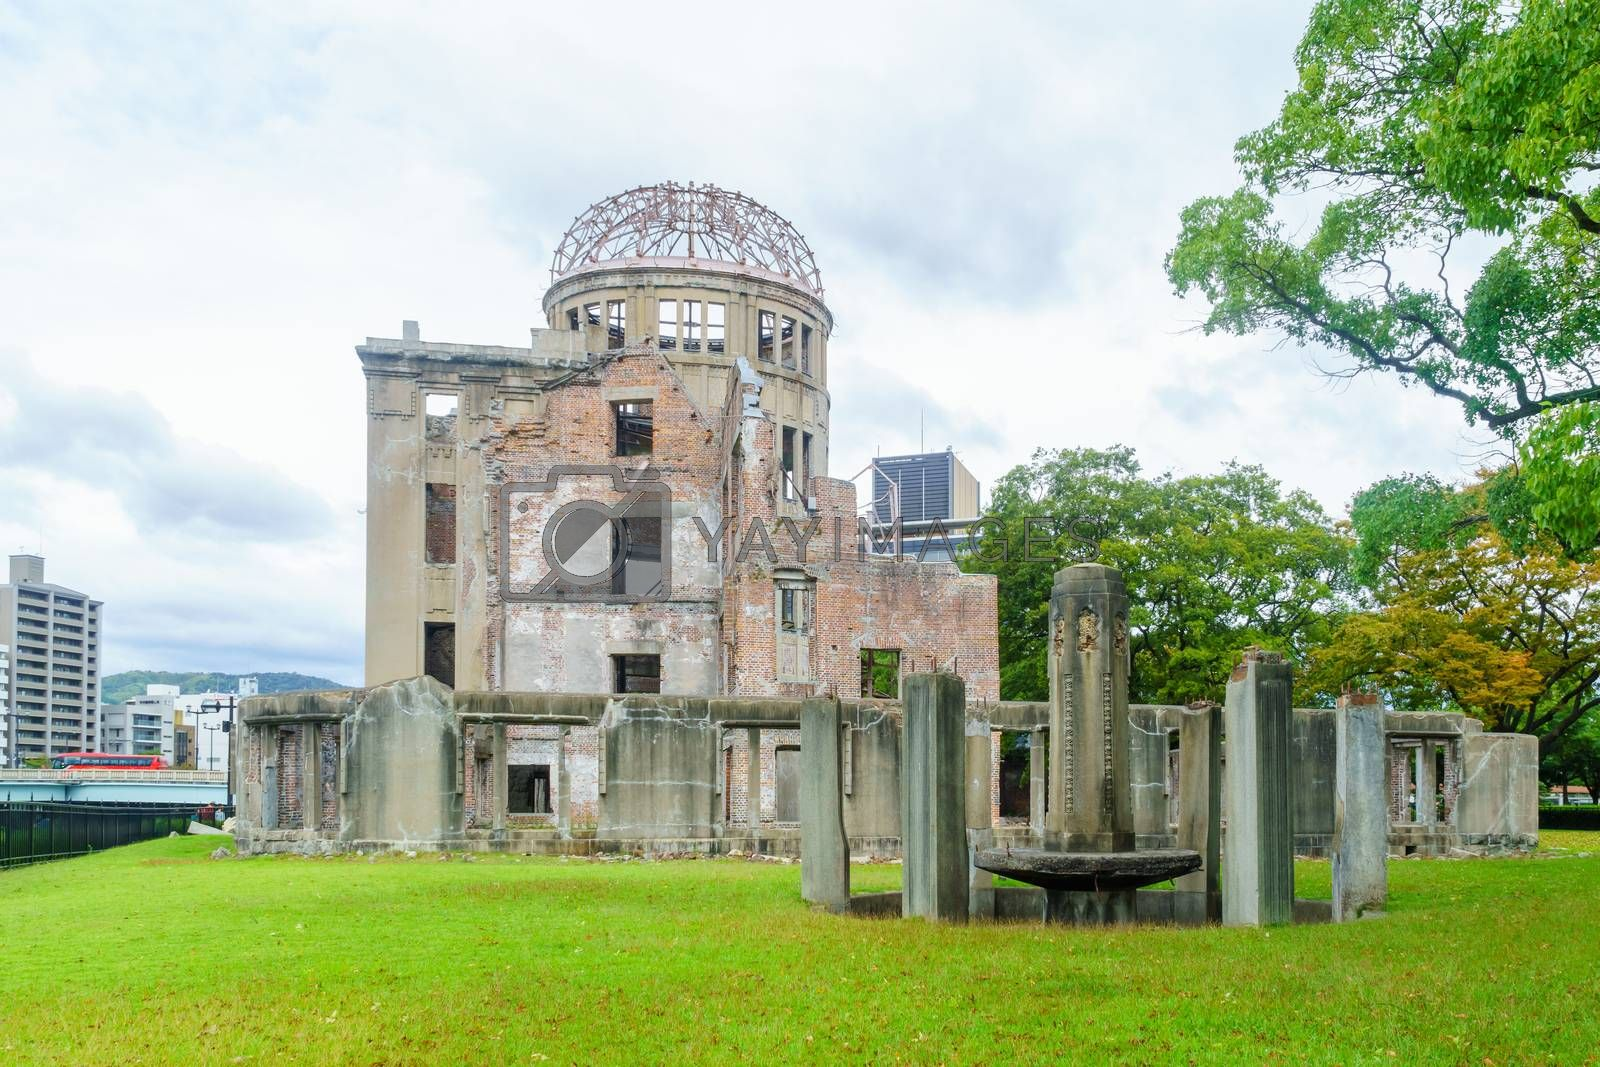 View of the Atomic Bomb Dome, in Hiroshima, Japan